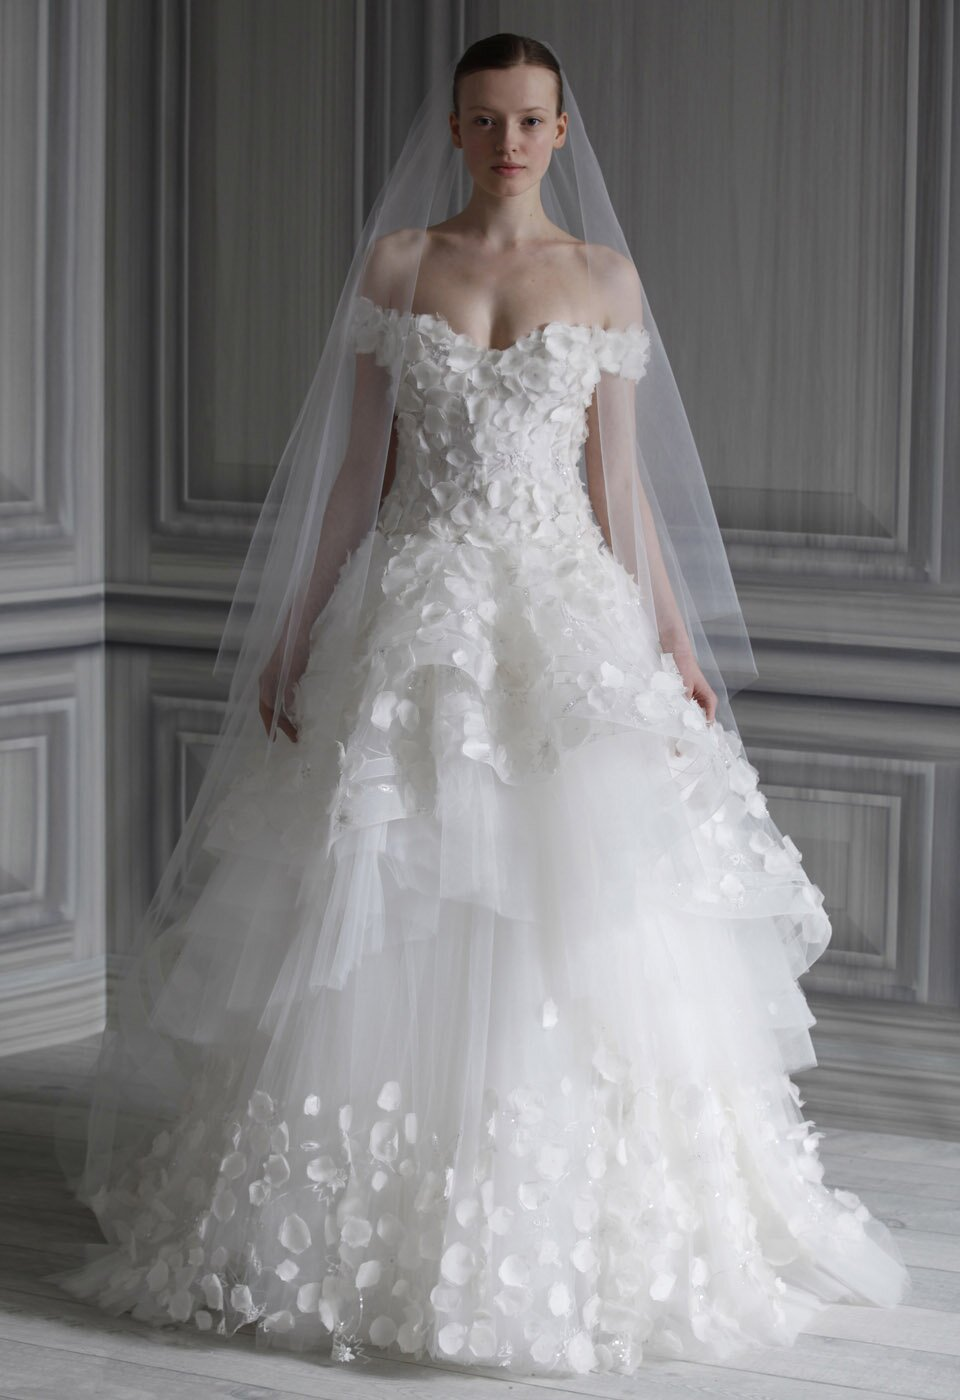 Wedding dresses for winter Photo - 2